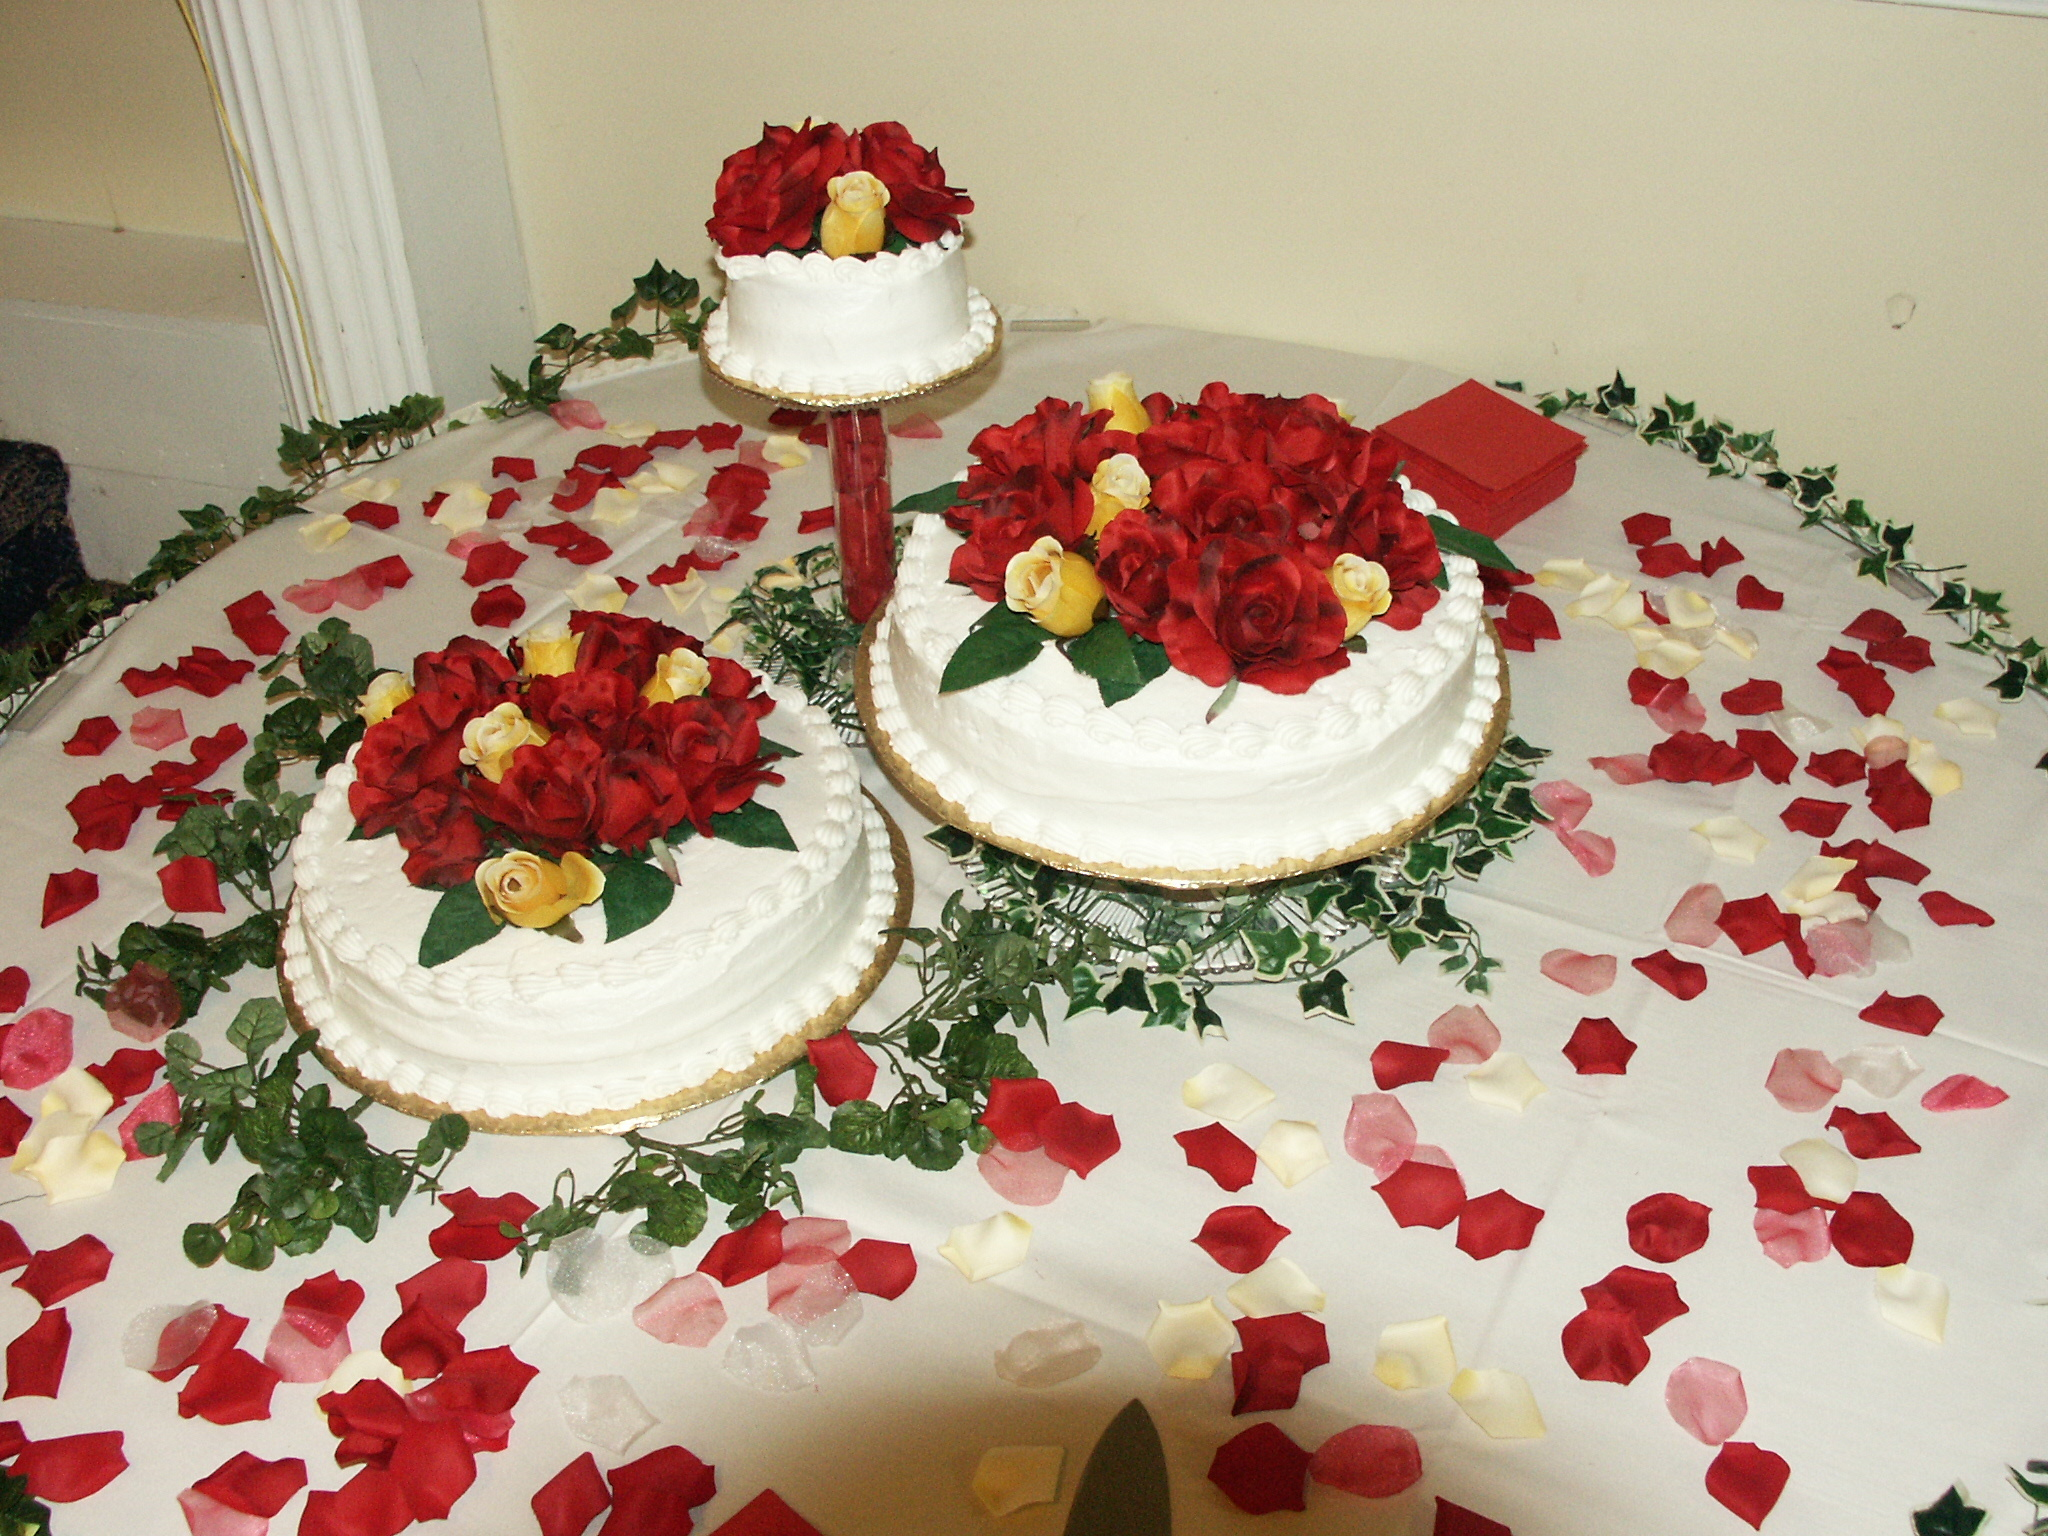 Reception, Flowers & Decor, Cakes, white, yellow, red, gold, cake, Of, Group, Bridal, Perfect, Weddings, A, To, For, Be, Can, Showers, Grooms, Made, Or, Extra, Is, As, Small, This, Large, It, Type, Graduated, Sincerely yours baked goods, Serve, Housewarmings, Height